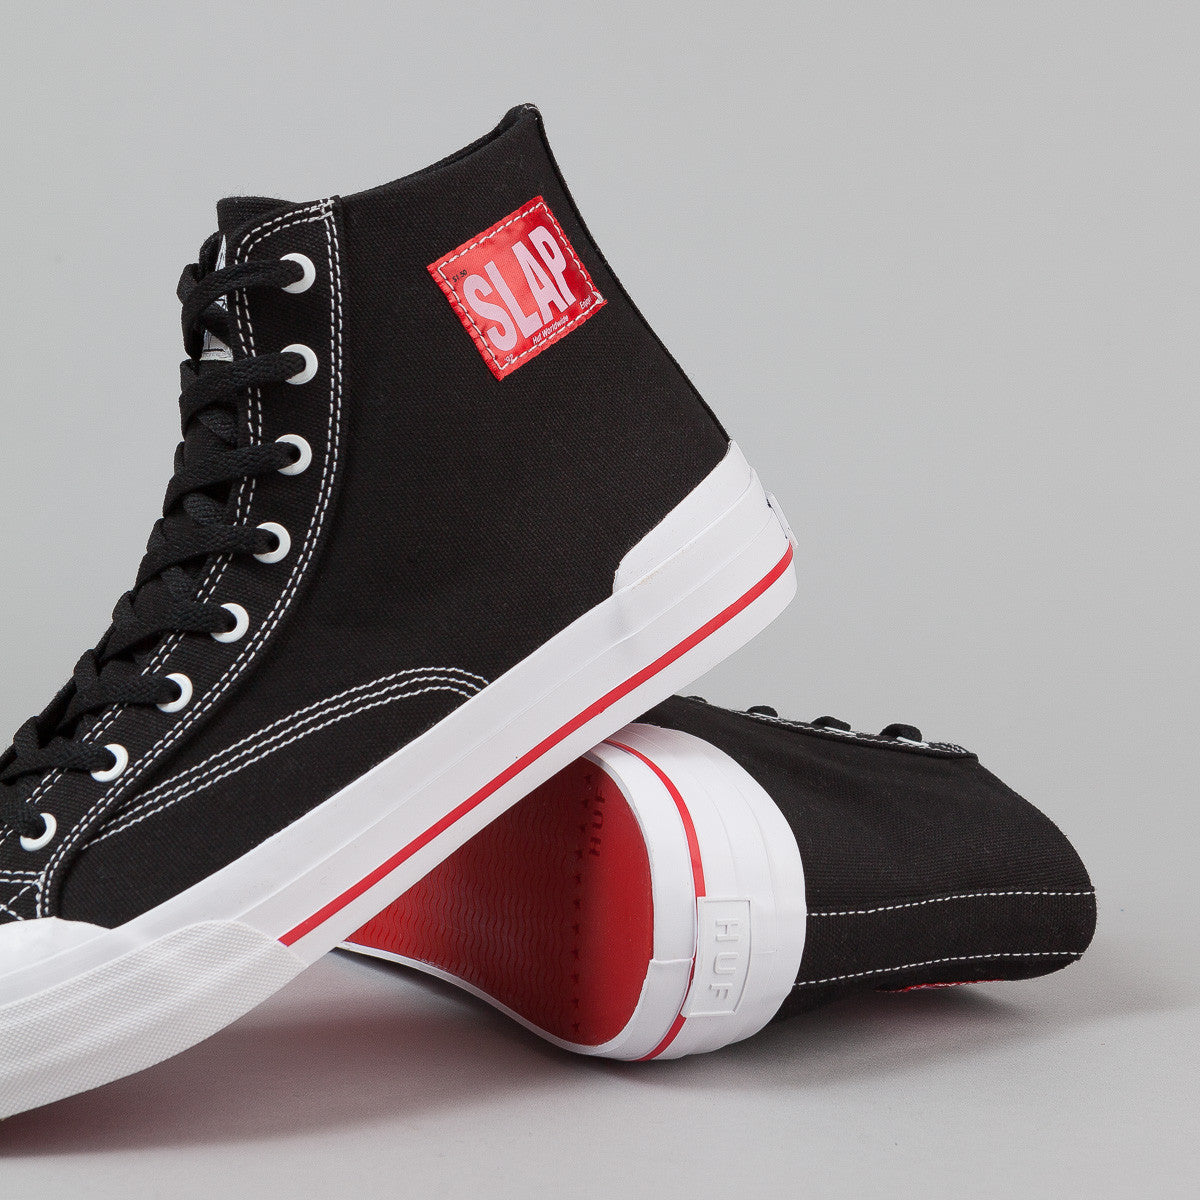 HUF x Slap Classic Hi Shoes - Black / White